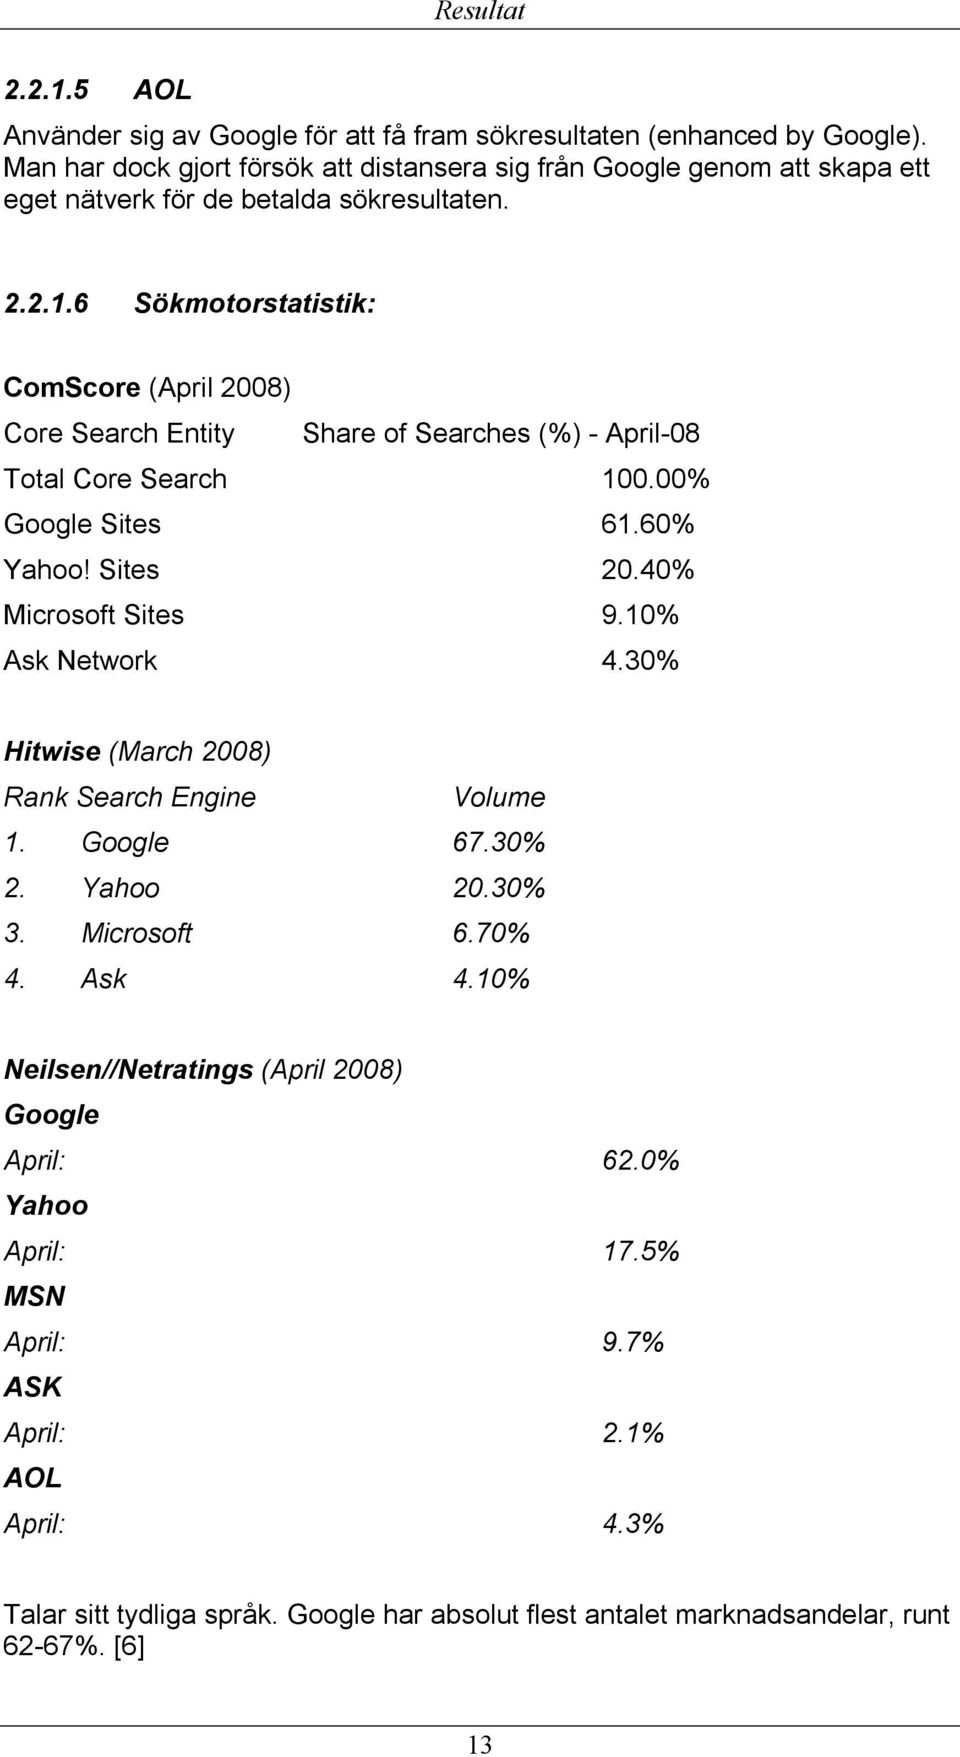 6 Sökmotorstatistik: ComScore (April 2008) Core Search Entity Share of Searches (%) - April-08 Total Core Search 100.00% Google Sites 61.60% Yahoo! Sites 20.40% Microsoft Sites 9.